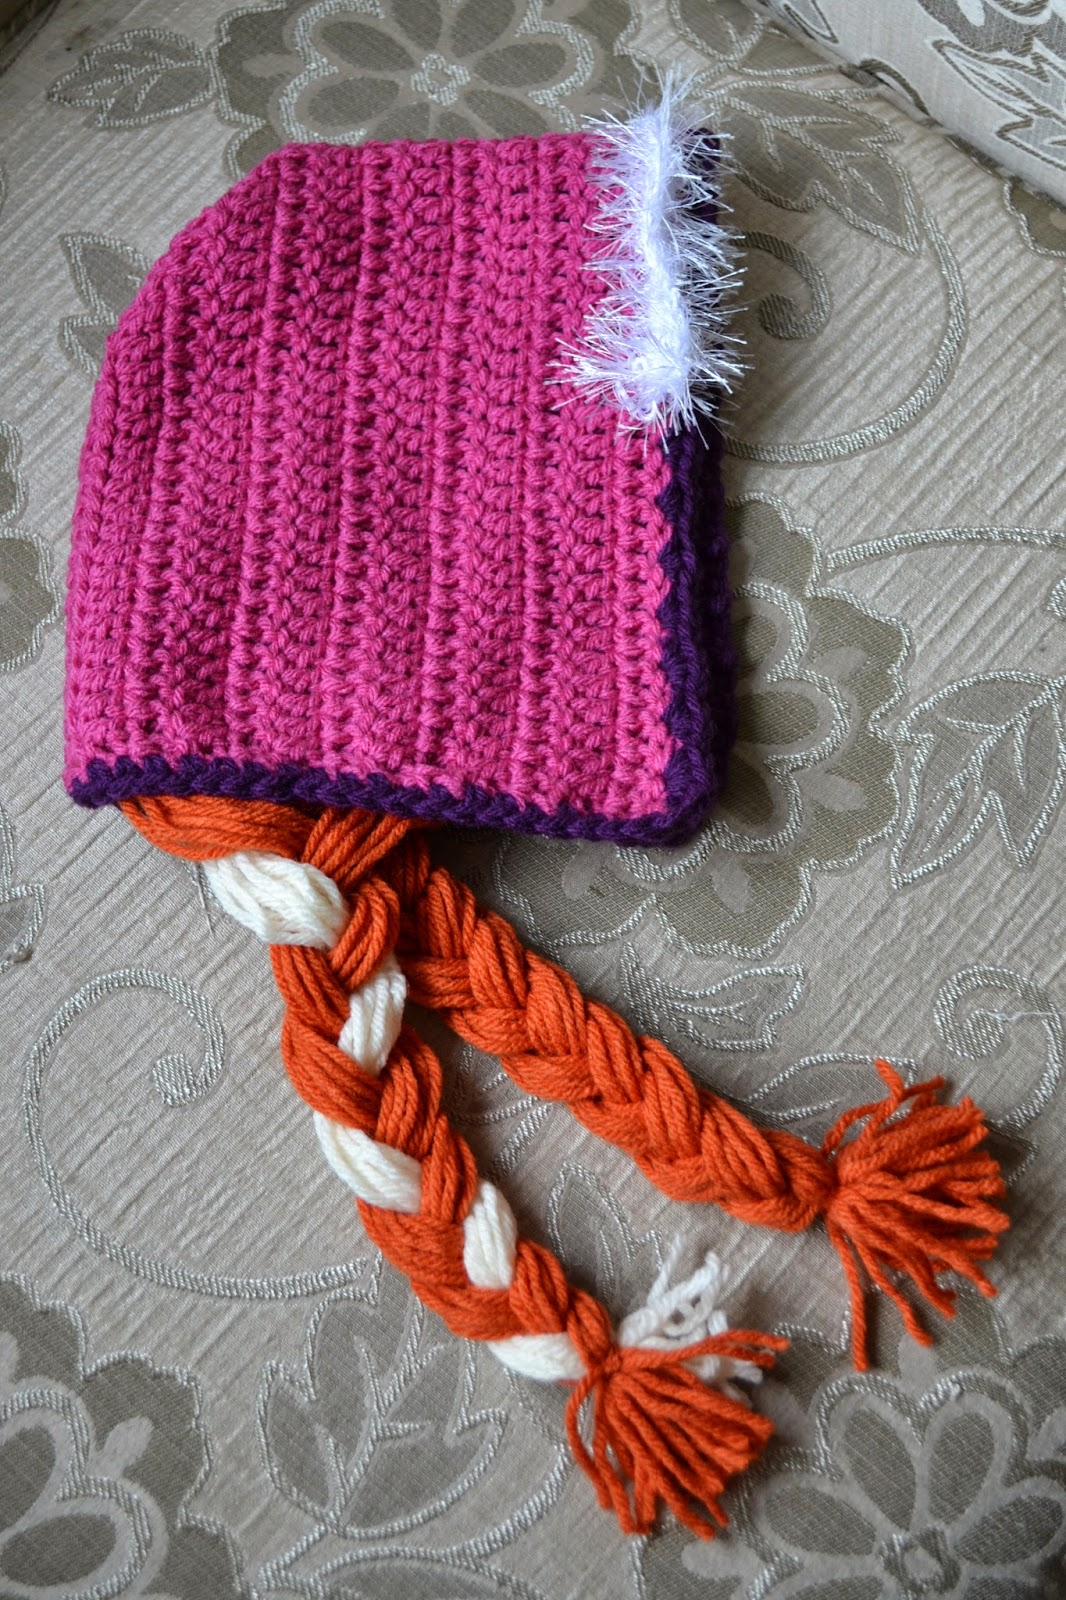 Free Crochet Pattern For Anna Hat : Knotty Knotty Crochet: Princess Anna bonnet FREE PATTERN